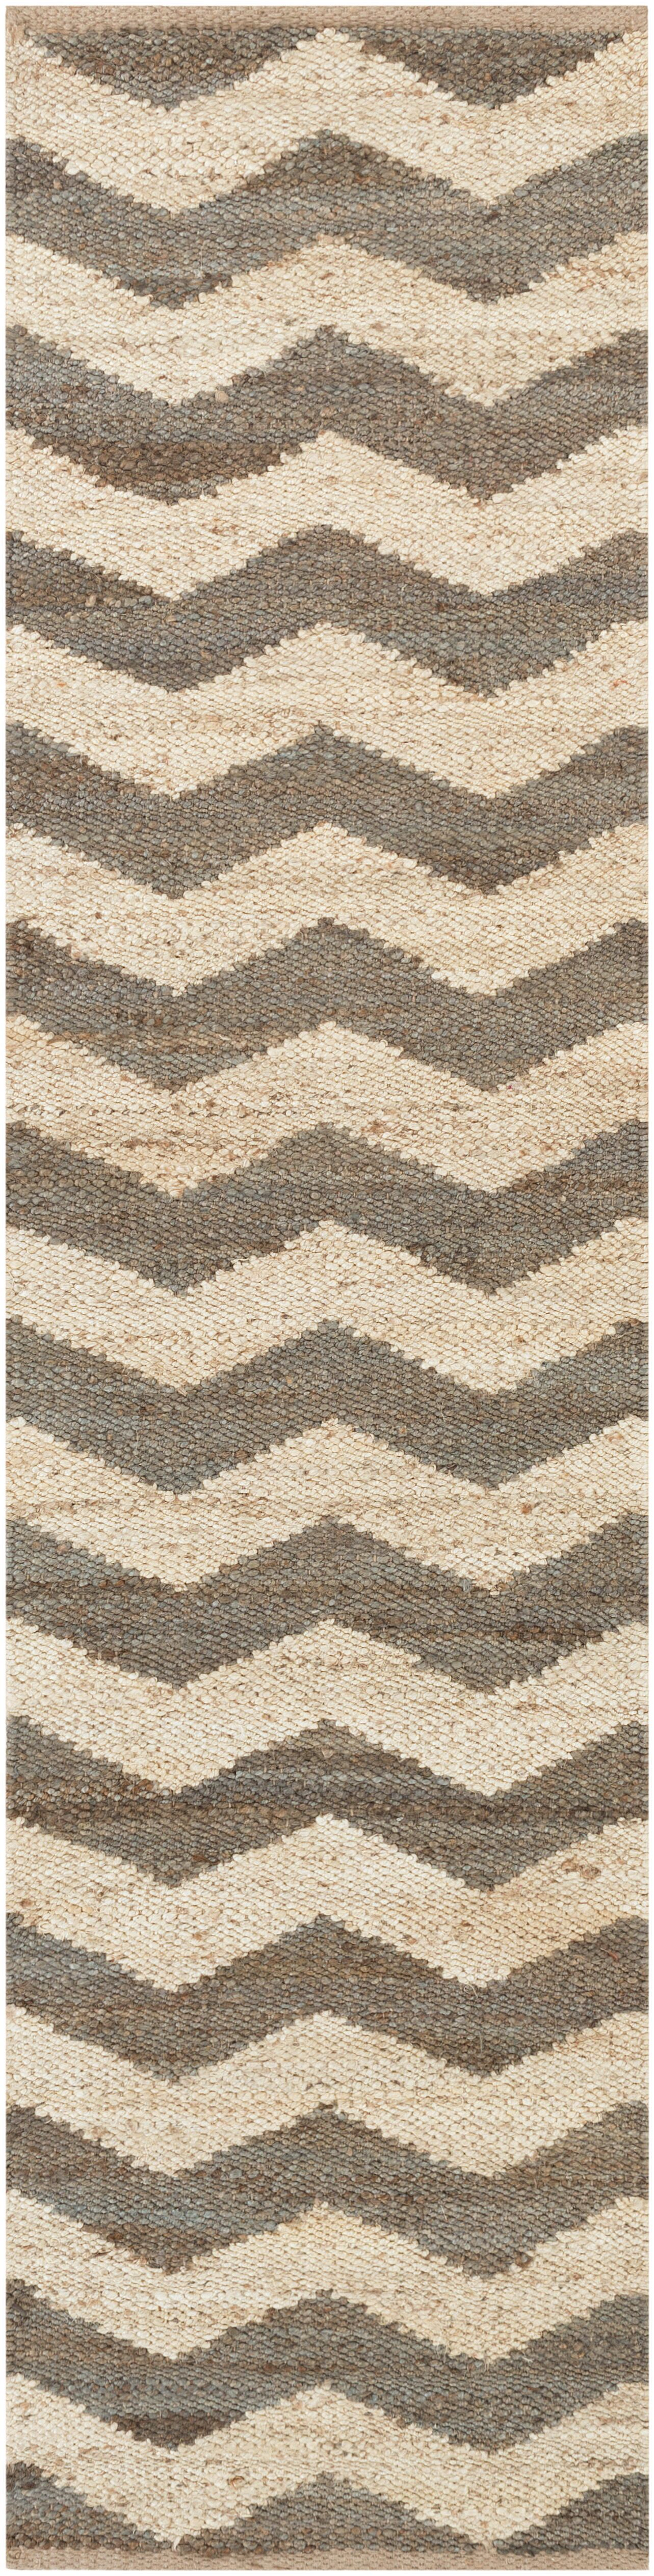 Ayers Brown/Ivory Area Rug Rug Size: Runner 2'3